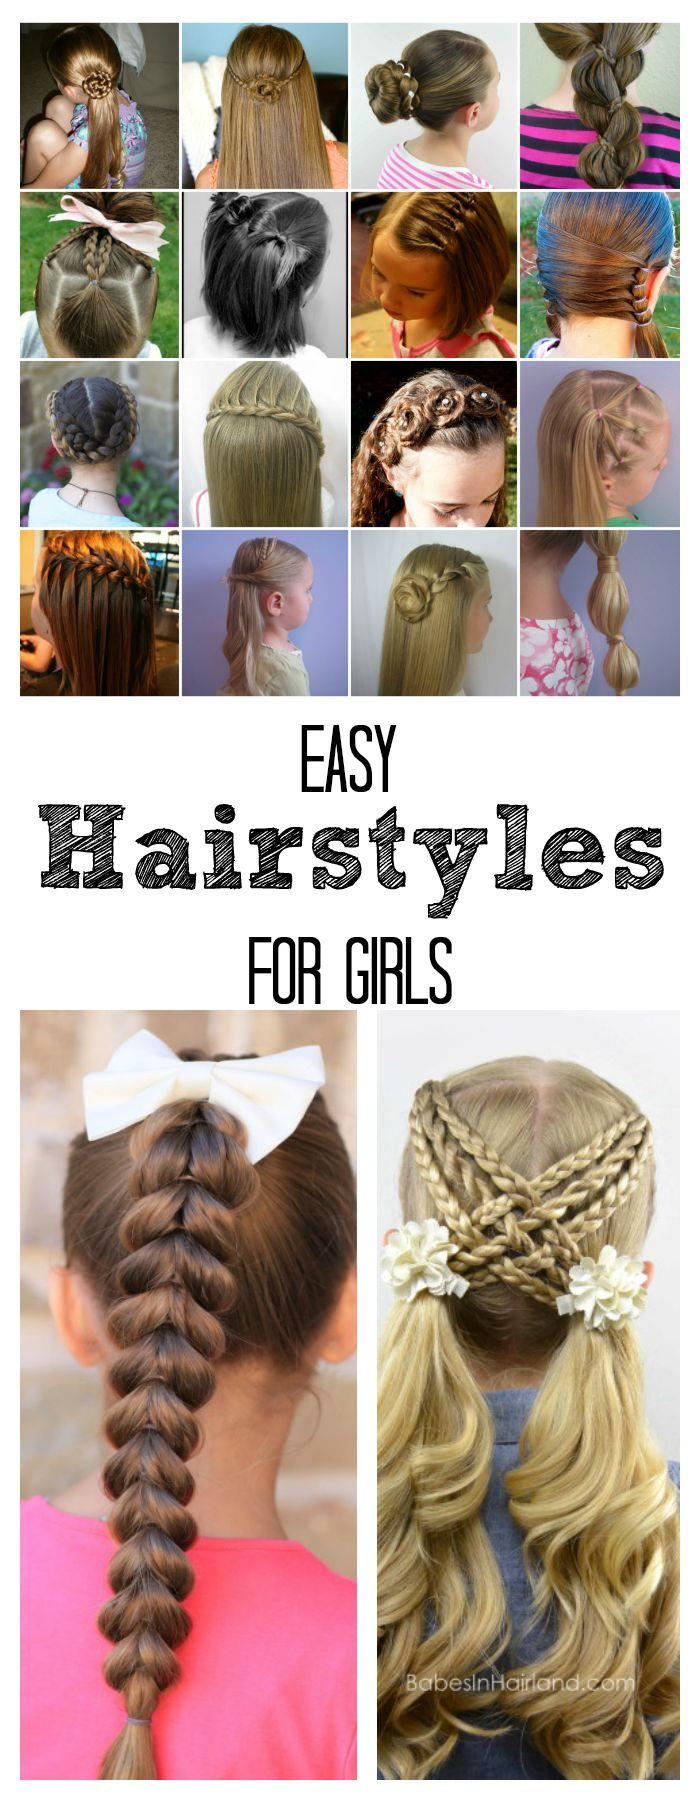 Easy hairstyles for girls things to try pinterest fun